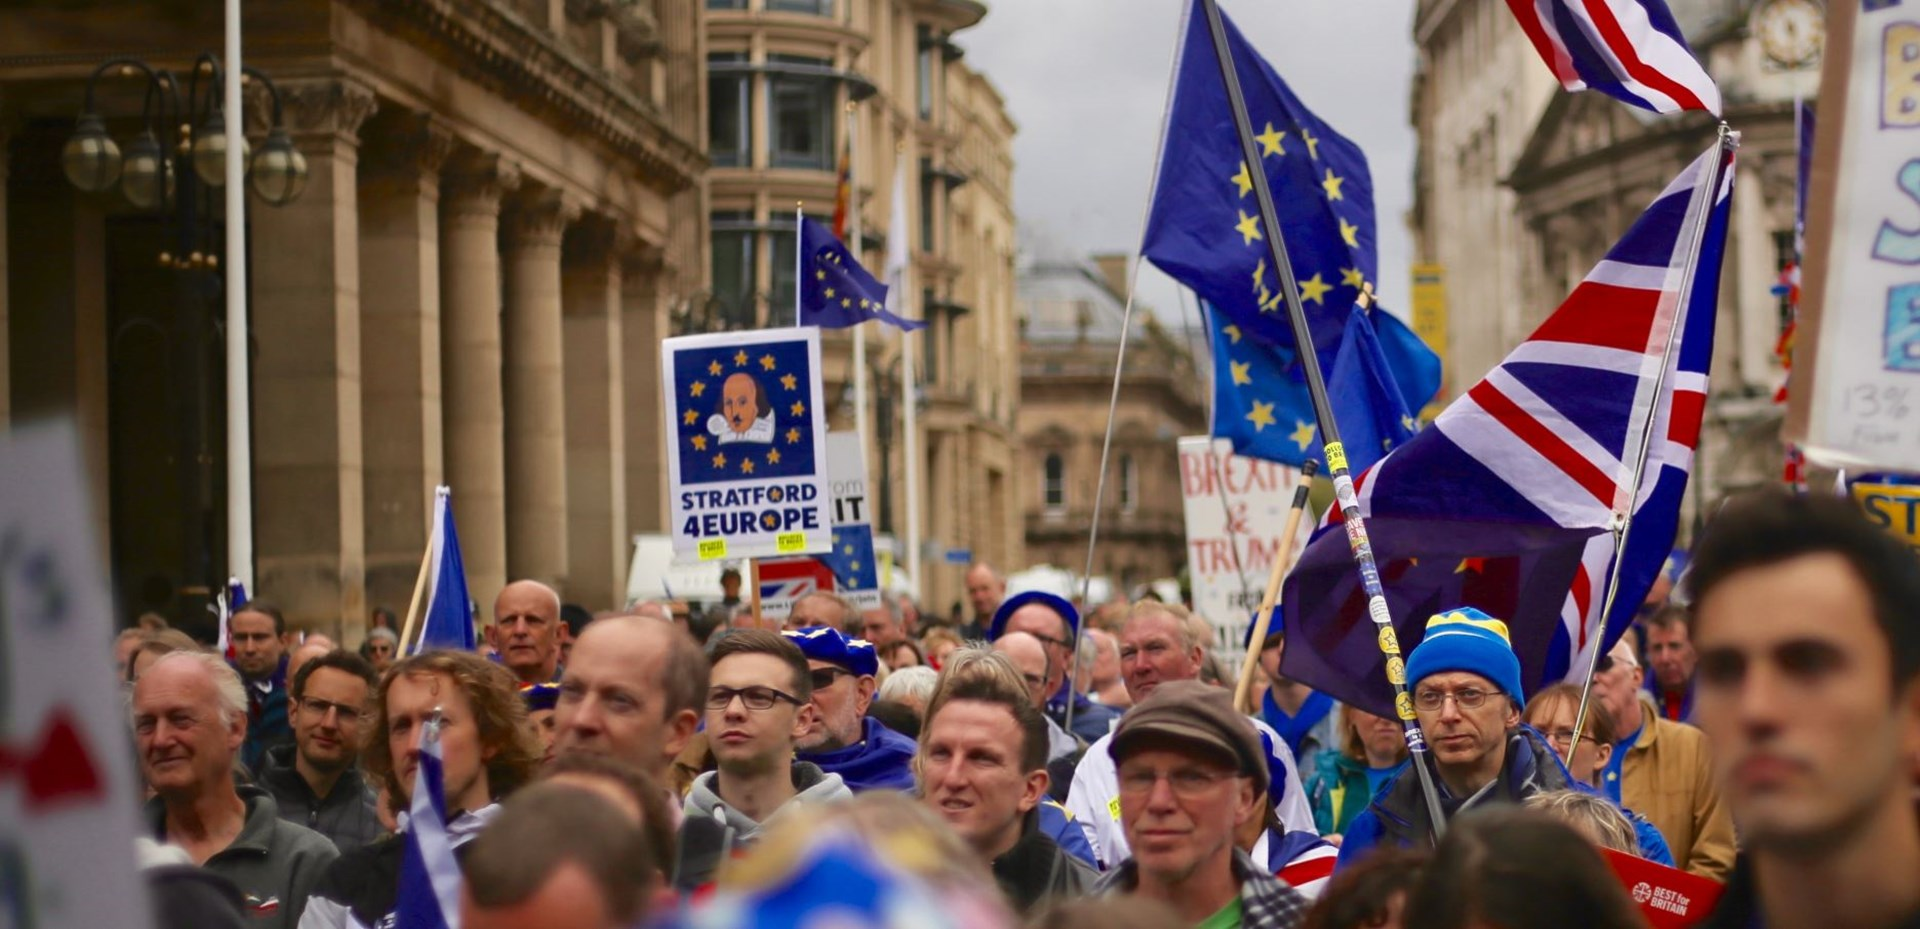 Free Market For Education Economists >> The Free Market Argument Against Brexit Is Collapsing Foundation